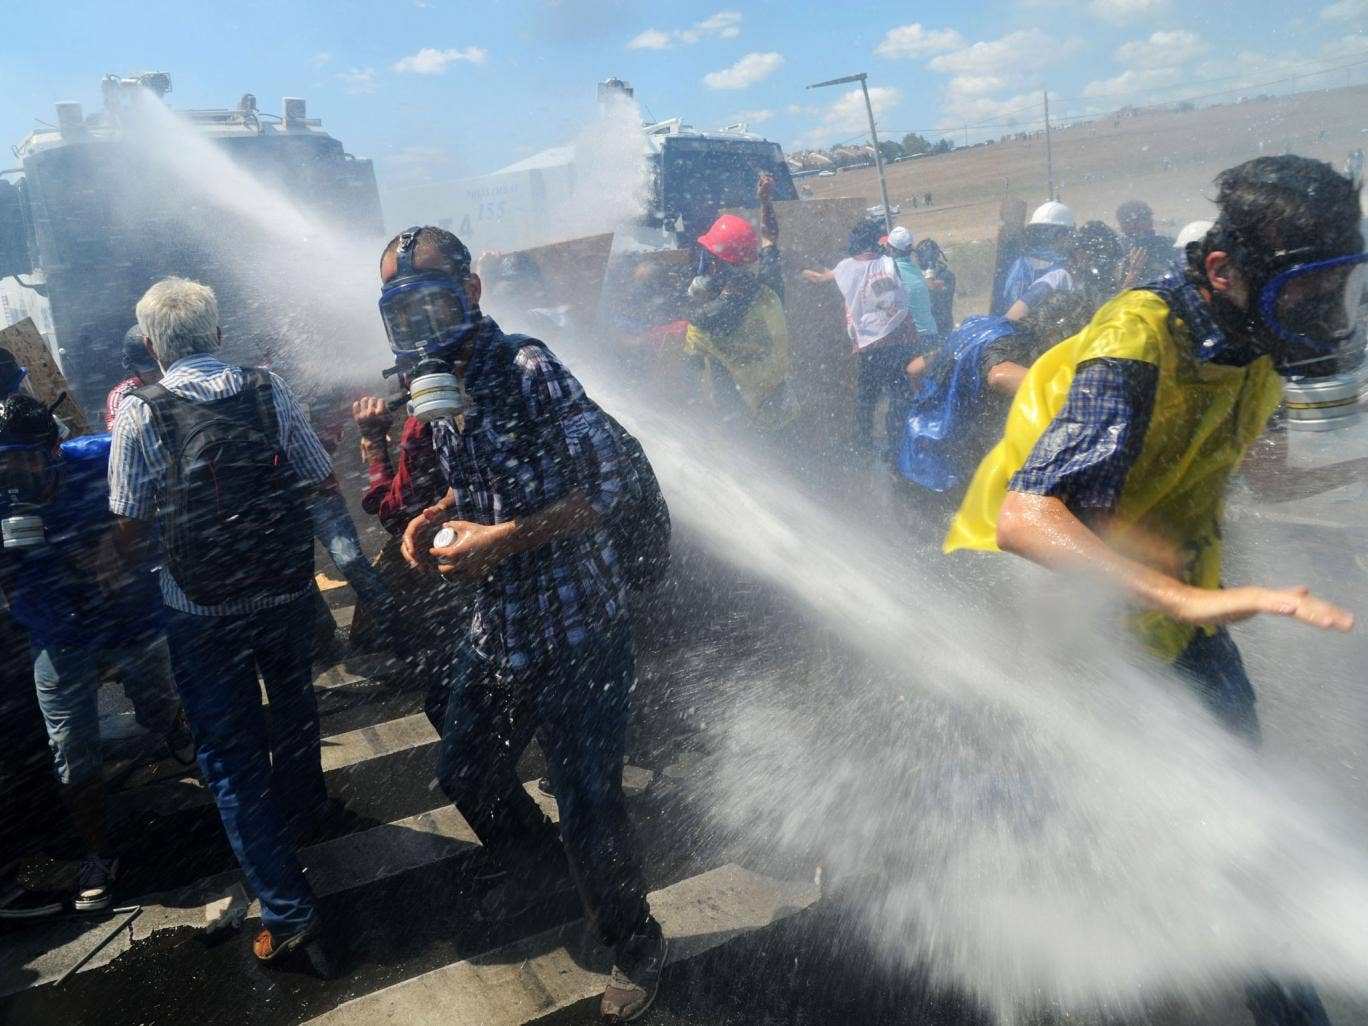 Demonstrators are hit by water cannon during clashes against Turkish police forces